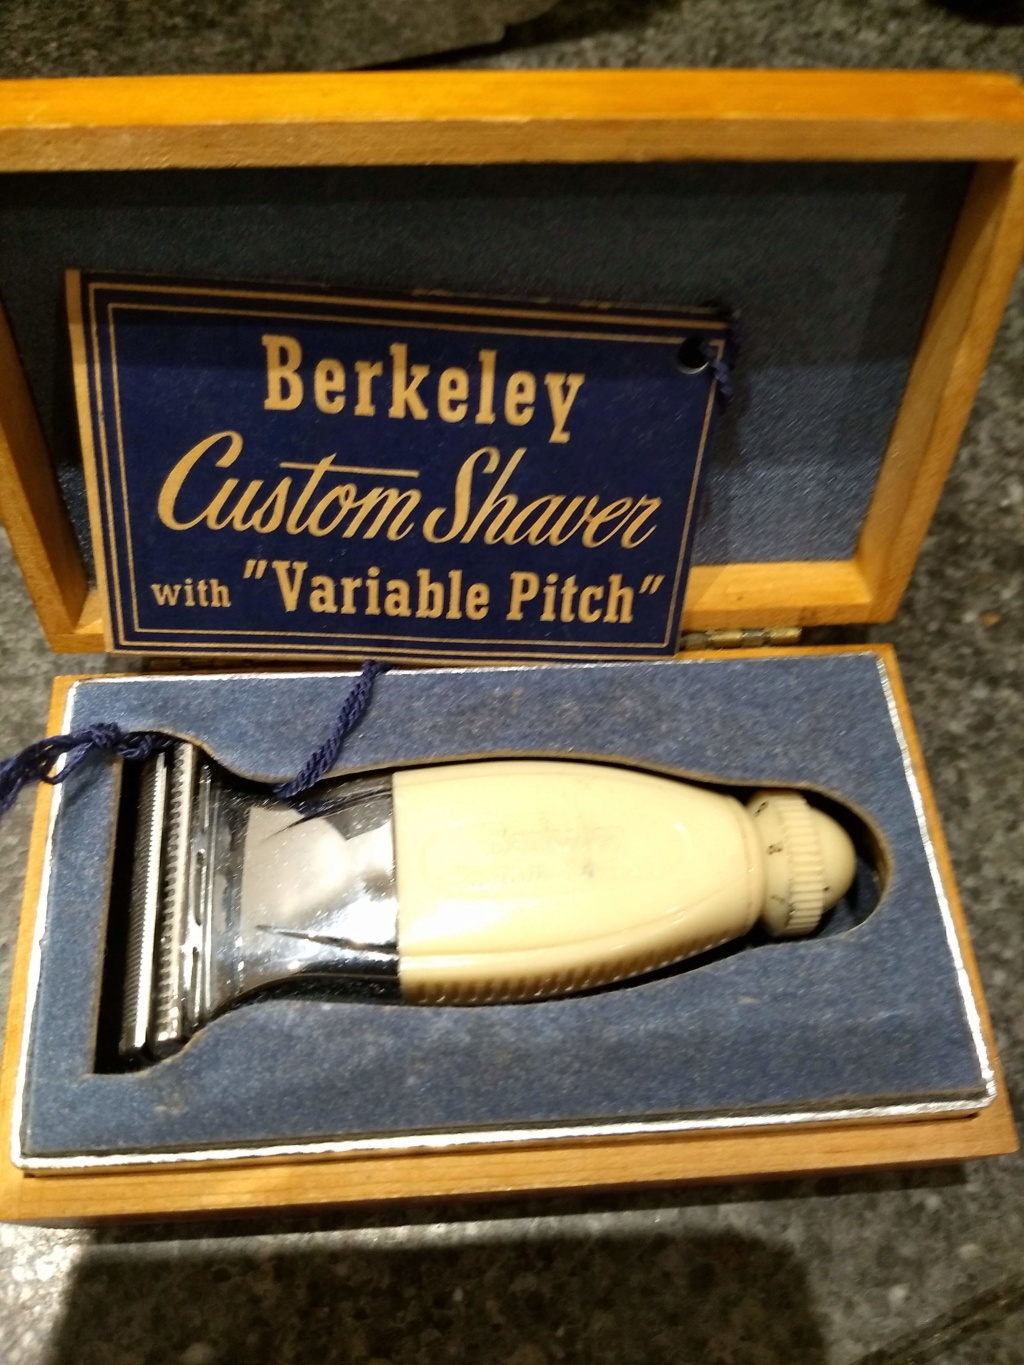 Berkeley Custom Shaver Img_2025